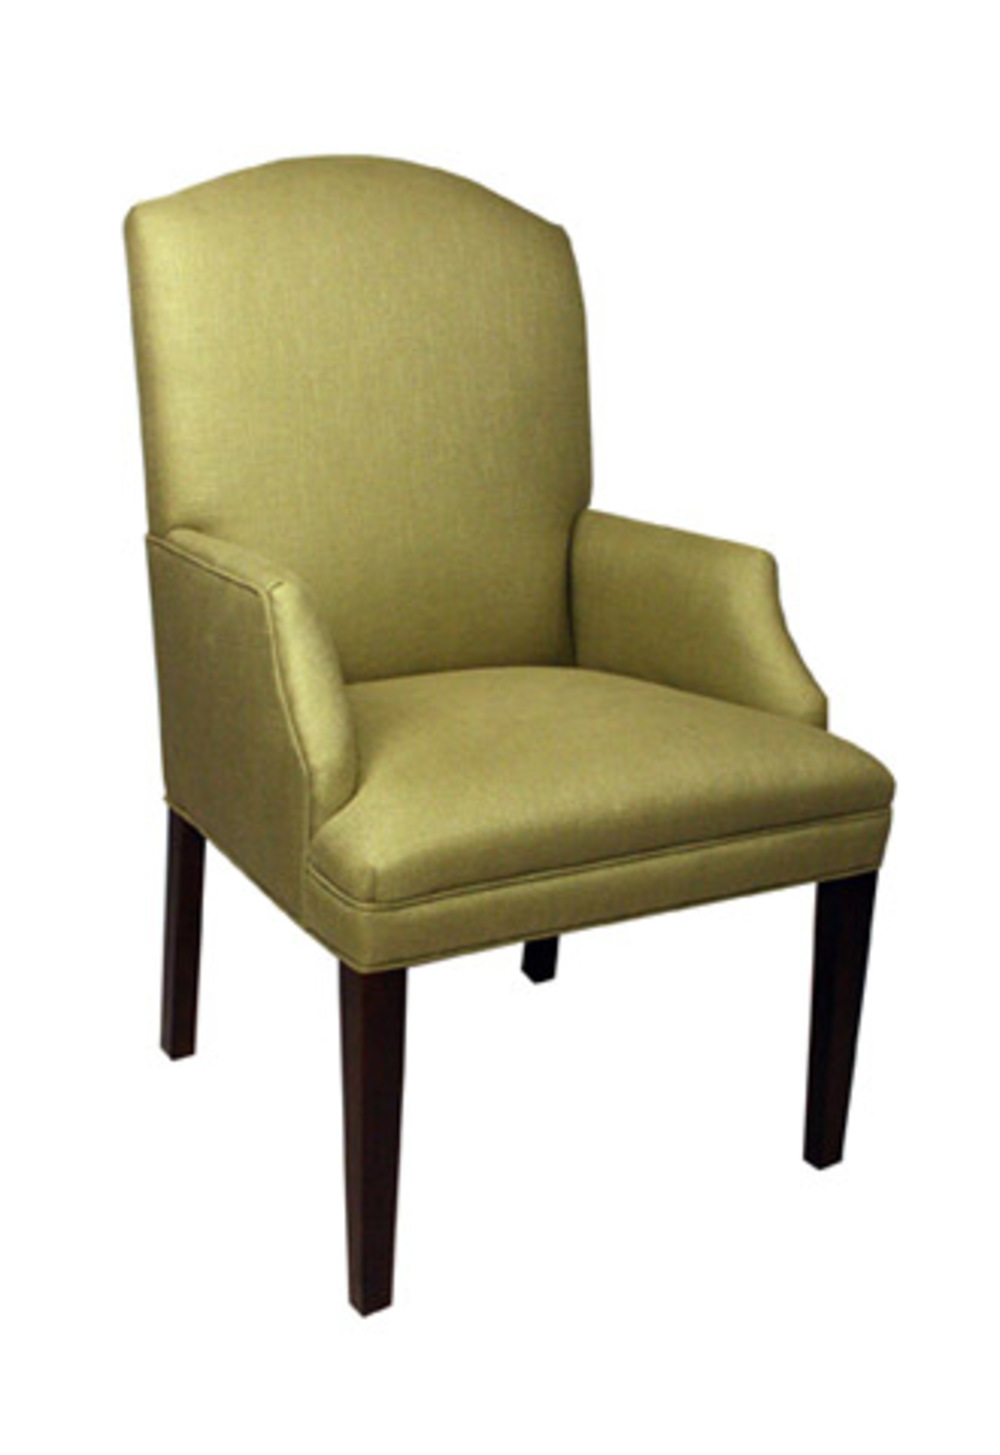 Style Upholstering - Dining Chair